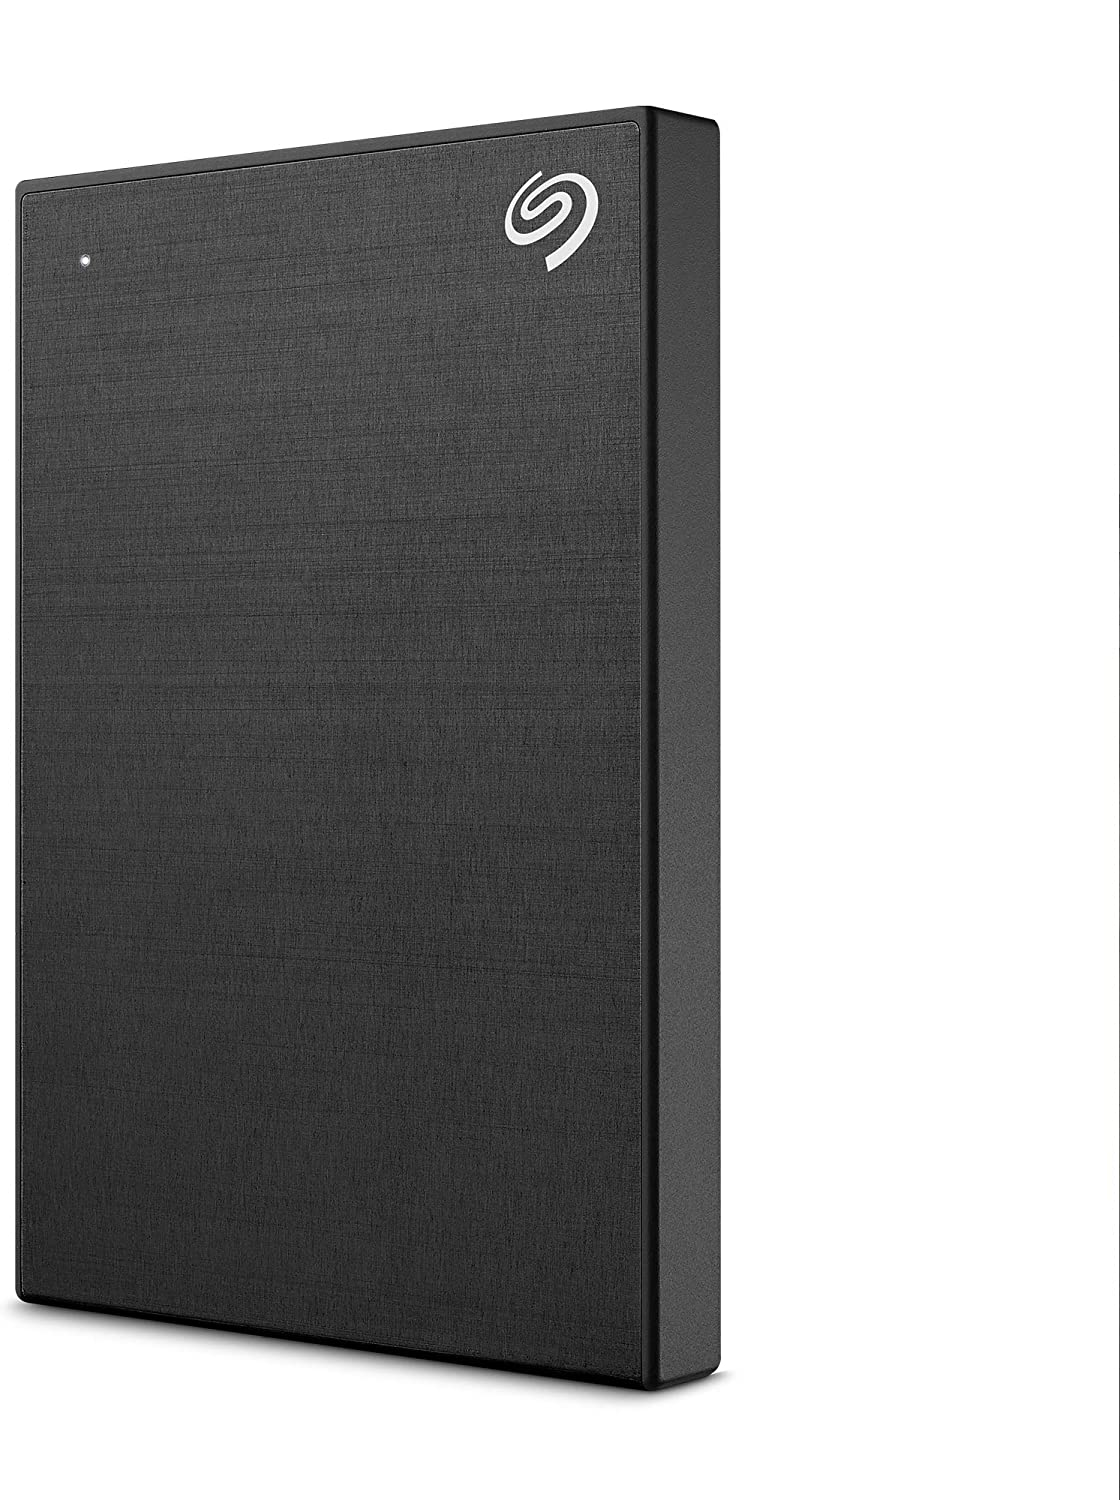 Seagate One Touch 5TB 1 yr MylioCreate STKC5000410 Black Portable External Hard Drive 4 mo Adobe Creative Cloud Photography and Two-yr Rescue Services PC Notebook /& Mac USB 3.0